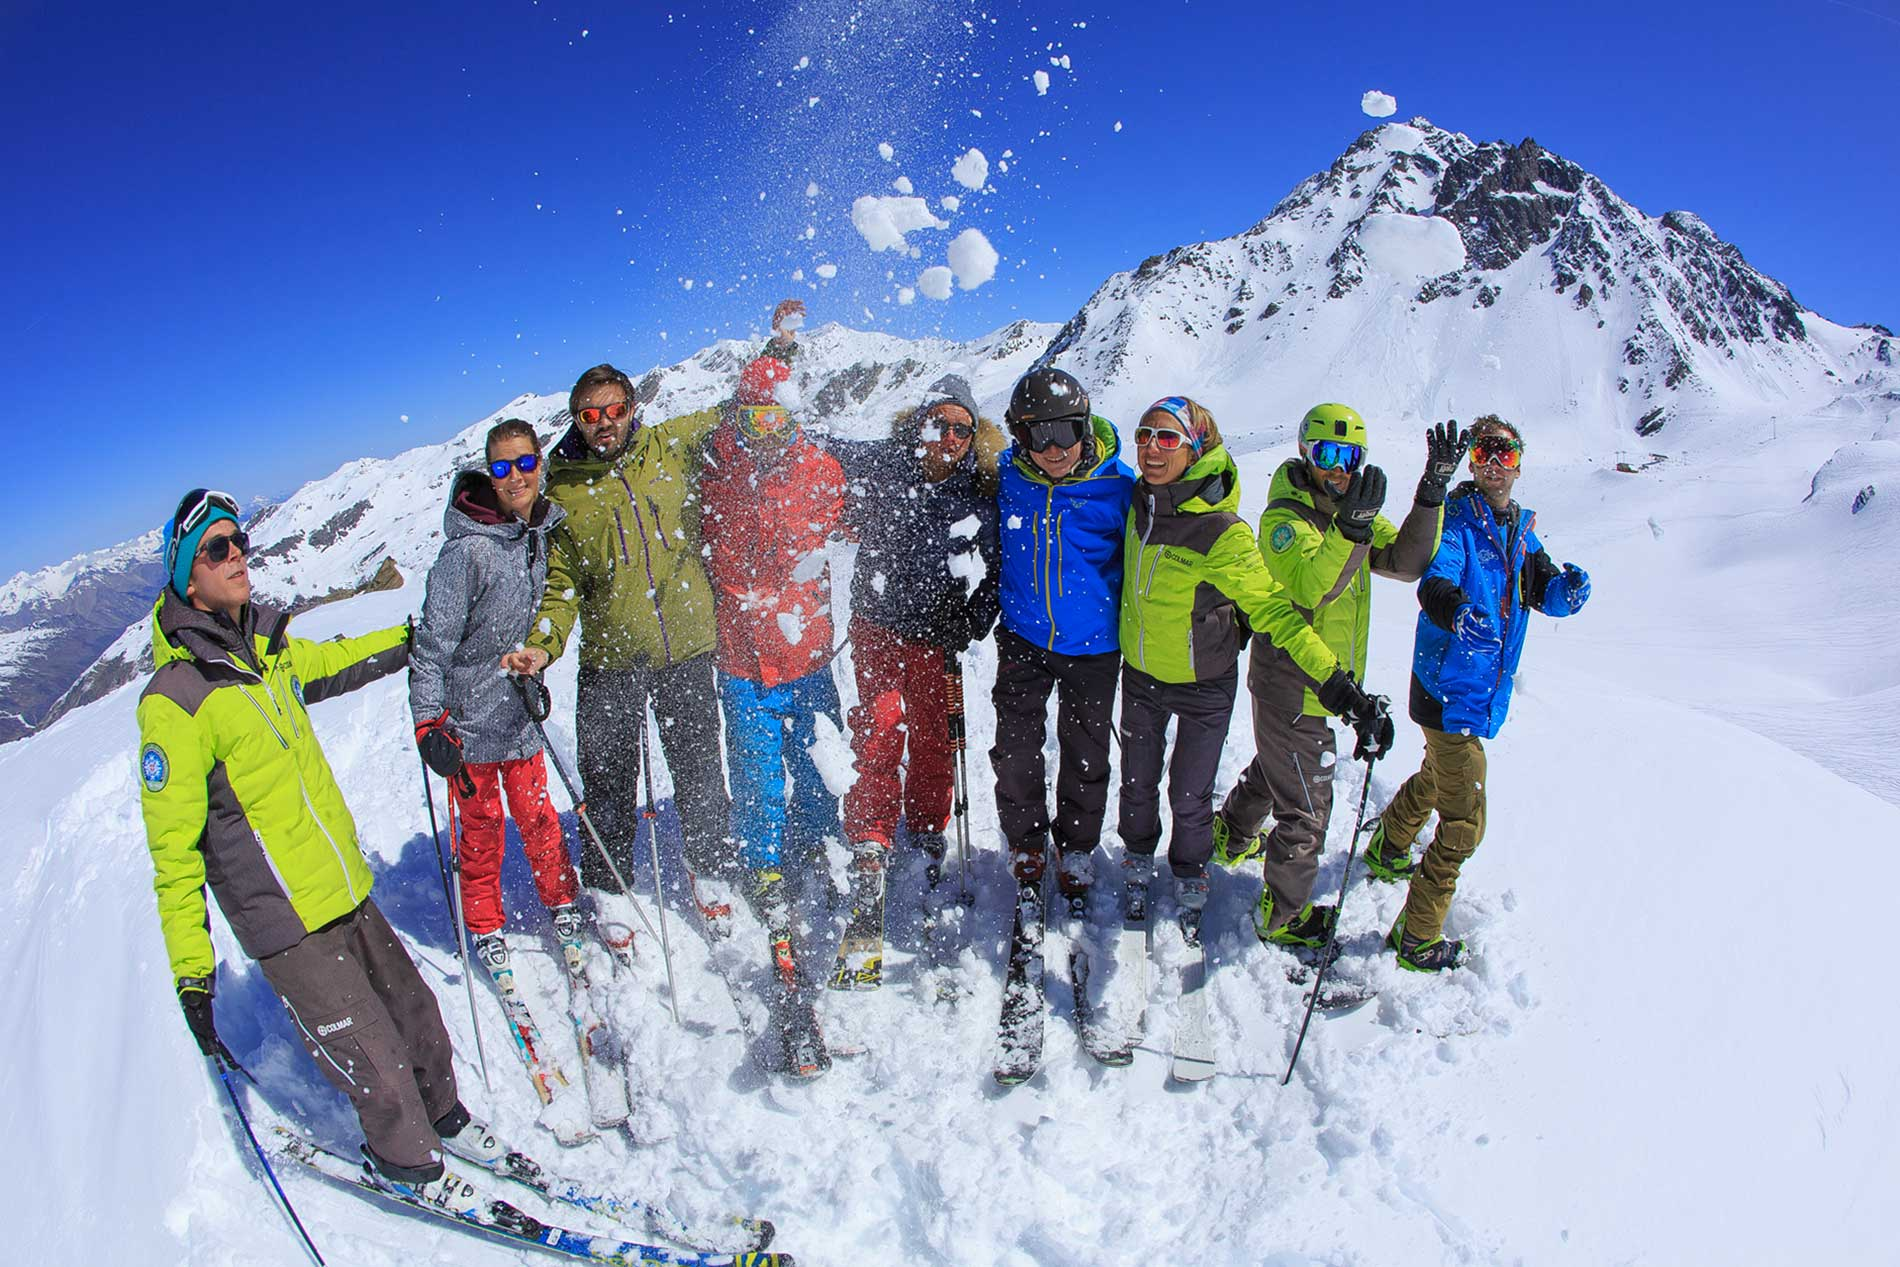 Ski group lessons adults Prosneige